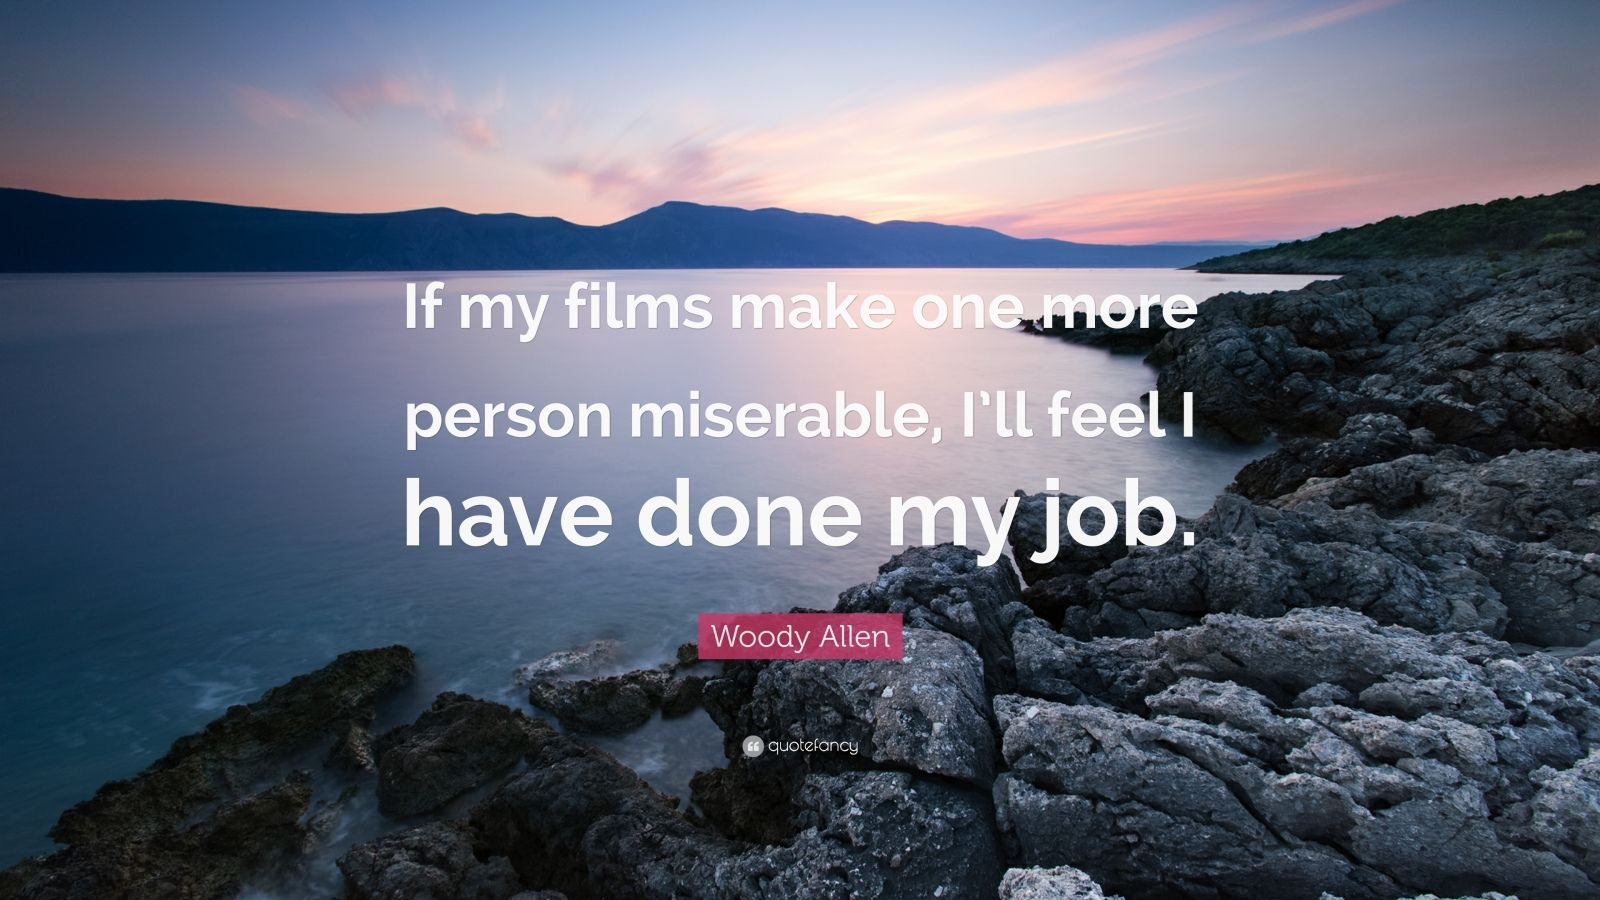 """Woody Allen Quote: """"If my films make one more person miserable, I'll feel I have done my job."""""""